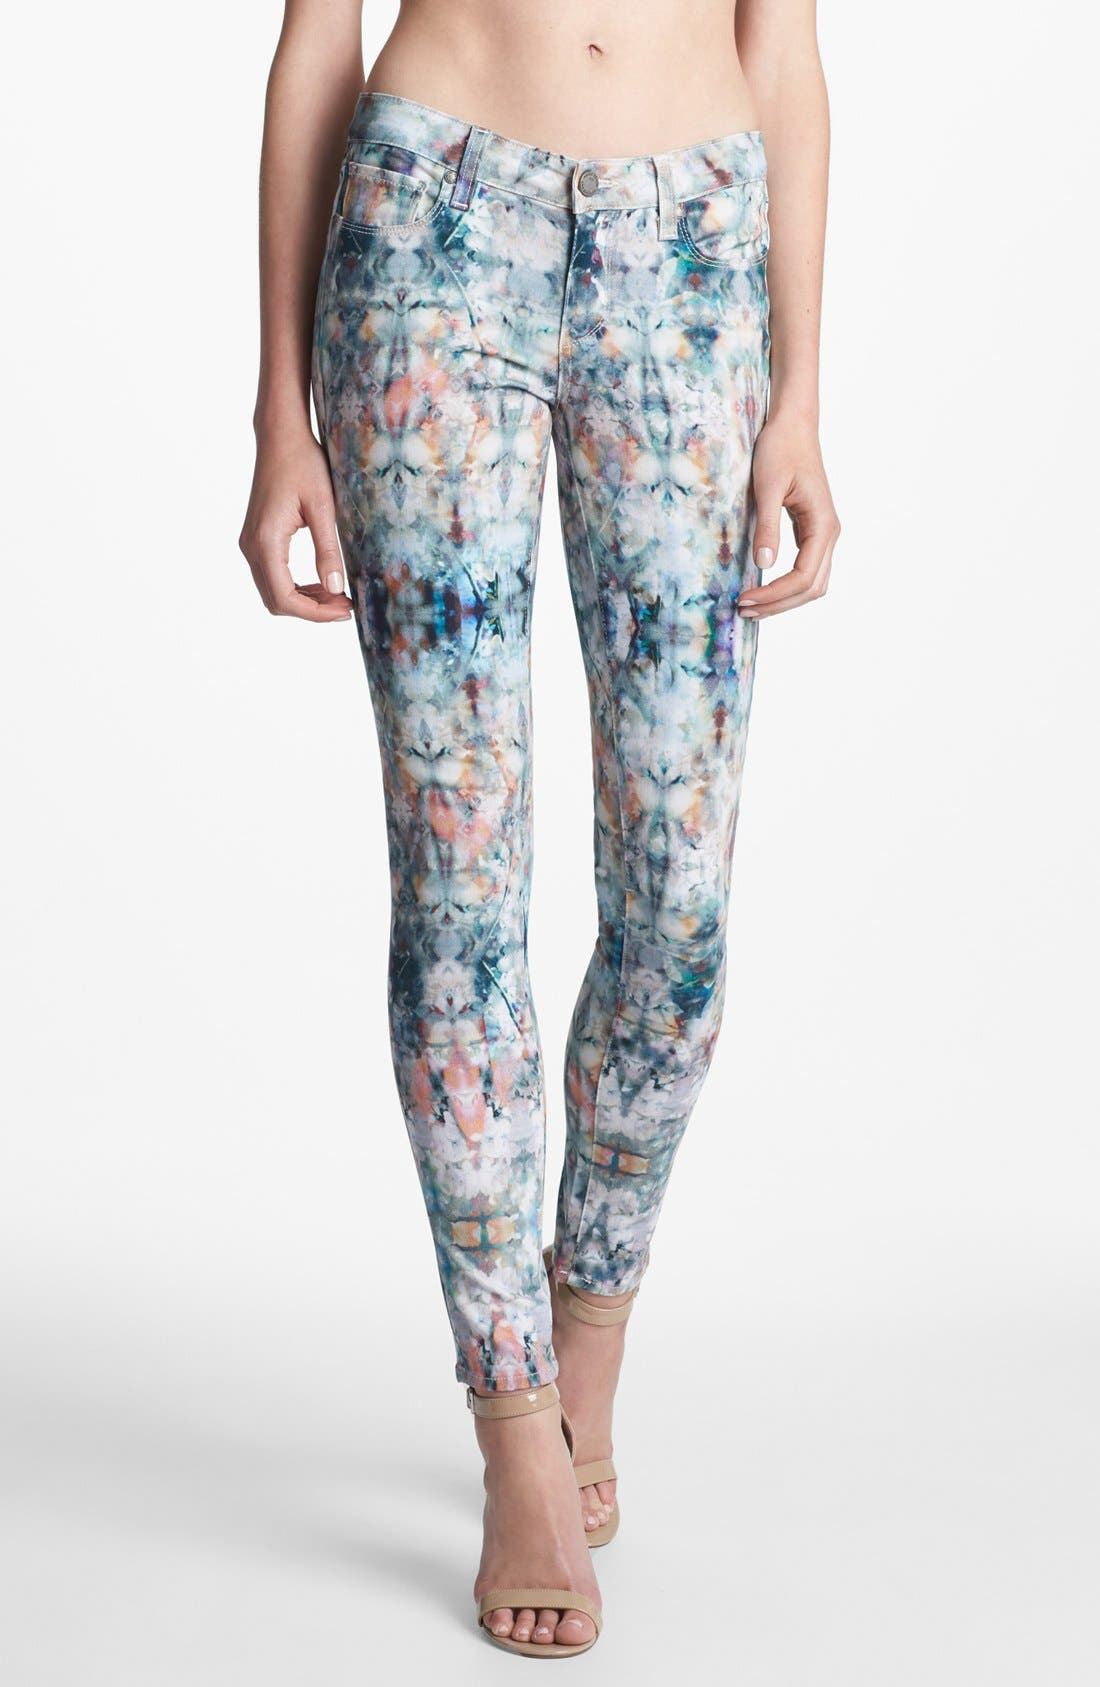 Alternate Image 1 Selected - Paige Denim 'Verdugo' Print Ultra Skinny Jeans (Daydreamer)